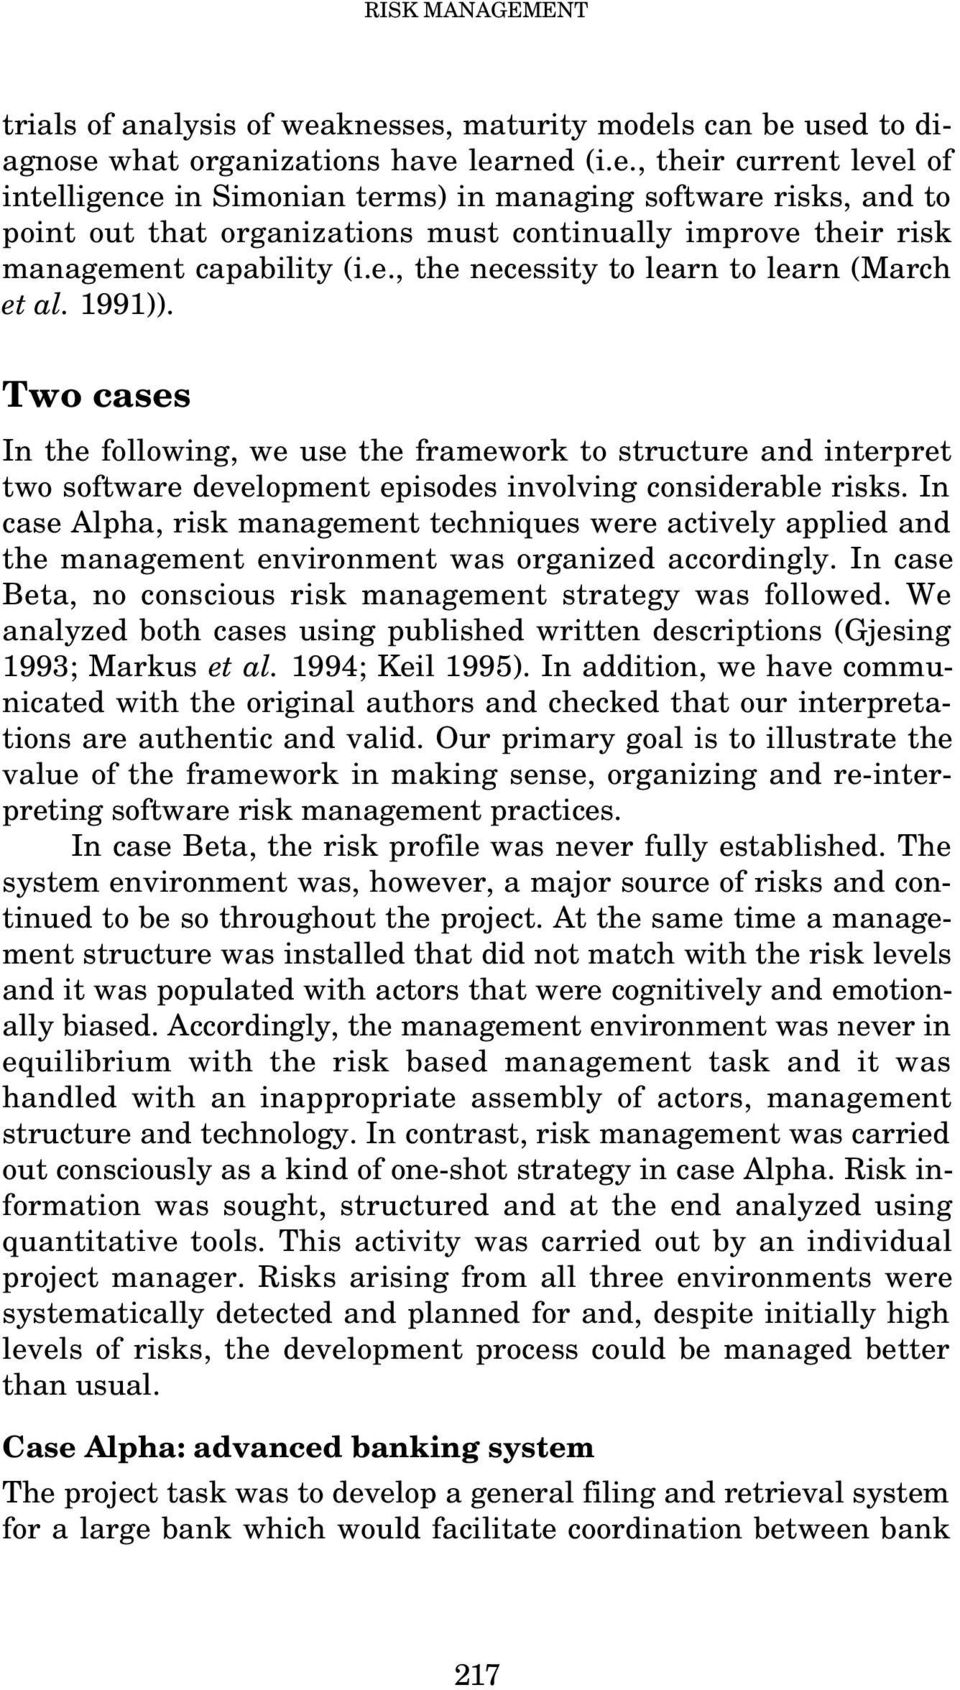 e., the necessity to learn to learn (March et al. 1991)). Two cases In the following, we use the framework to structure and interpret two software development episodes involving considerable risks.